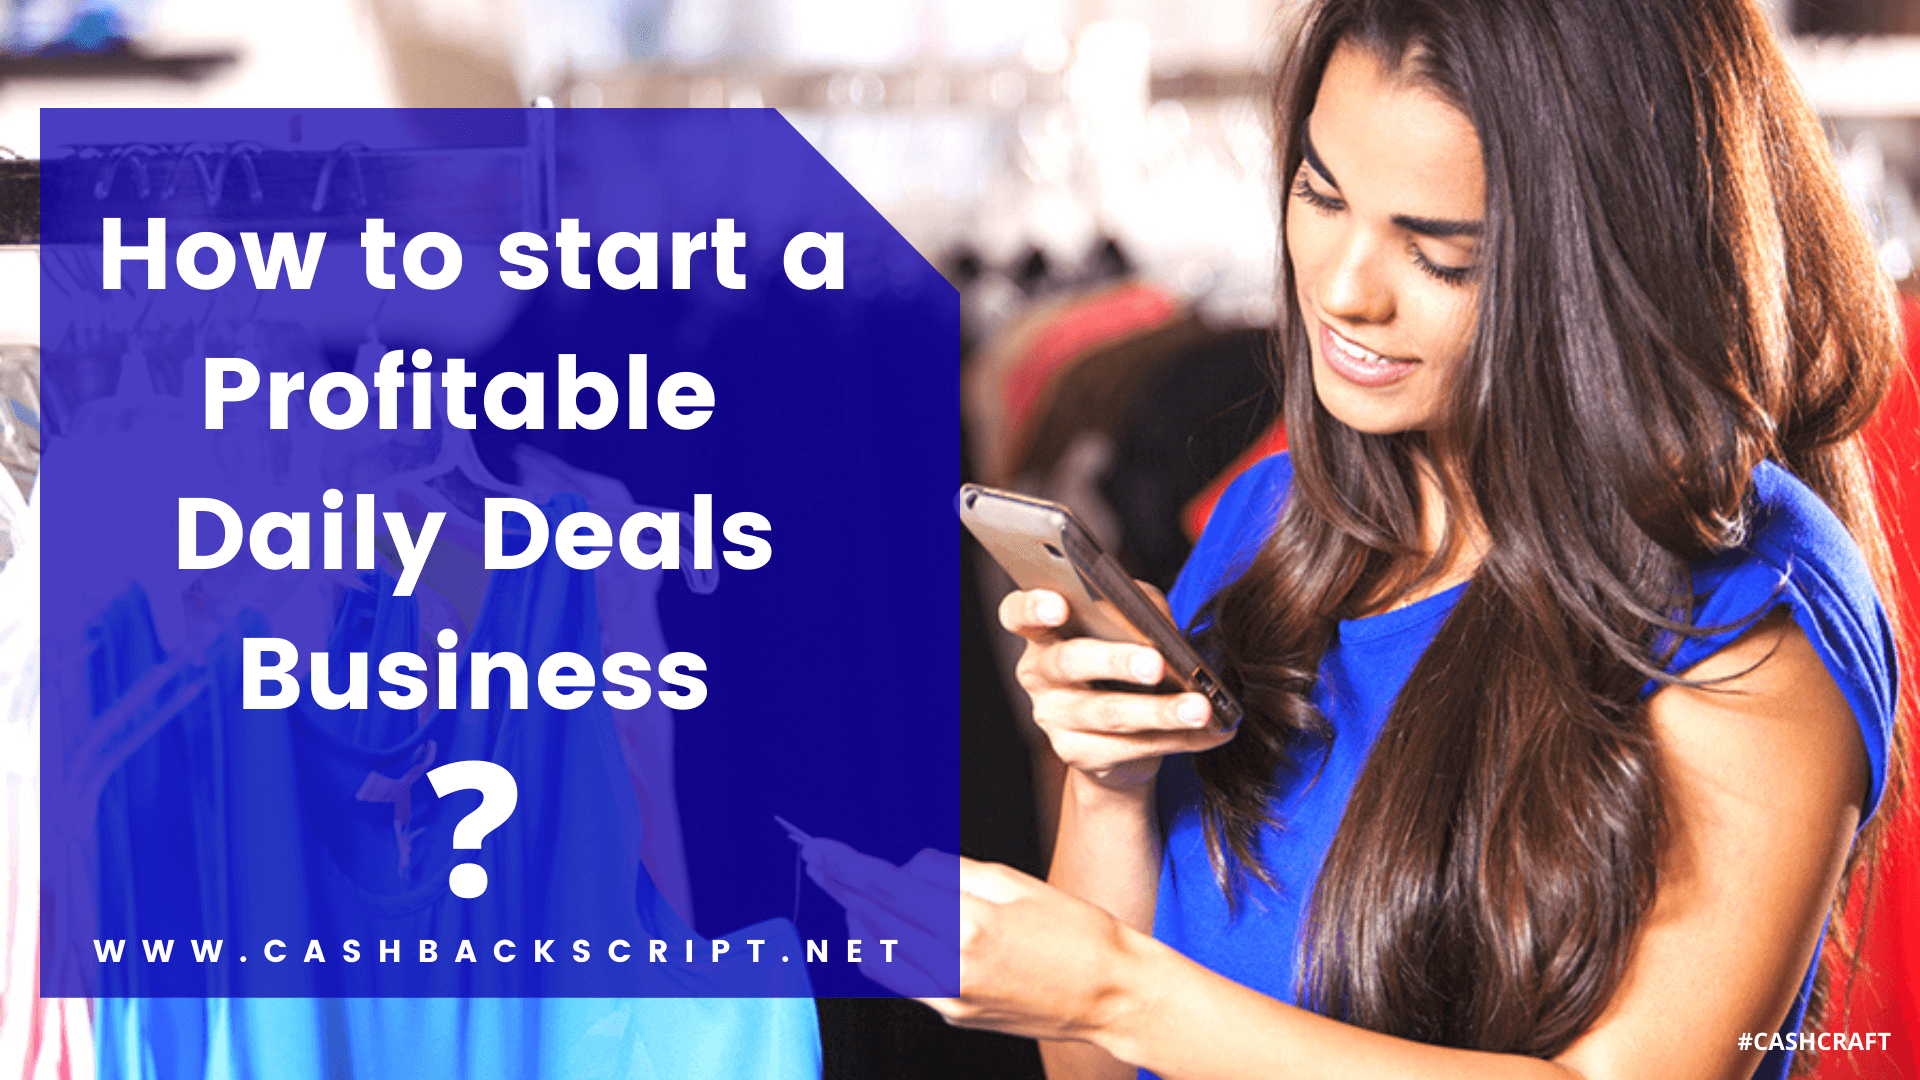 How to Start a Profitable Daily Deals Business?